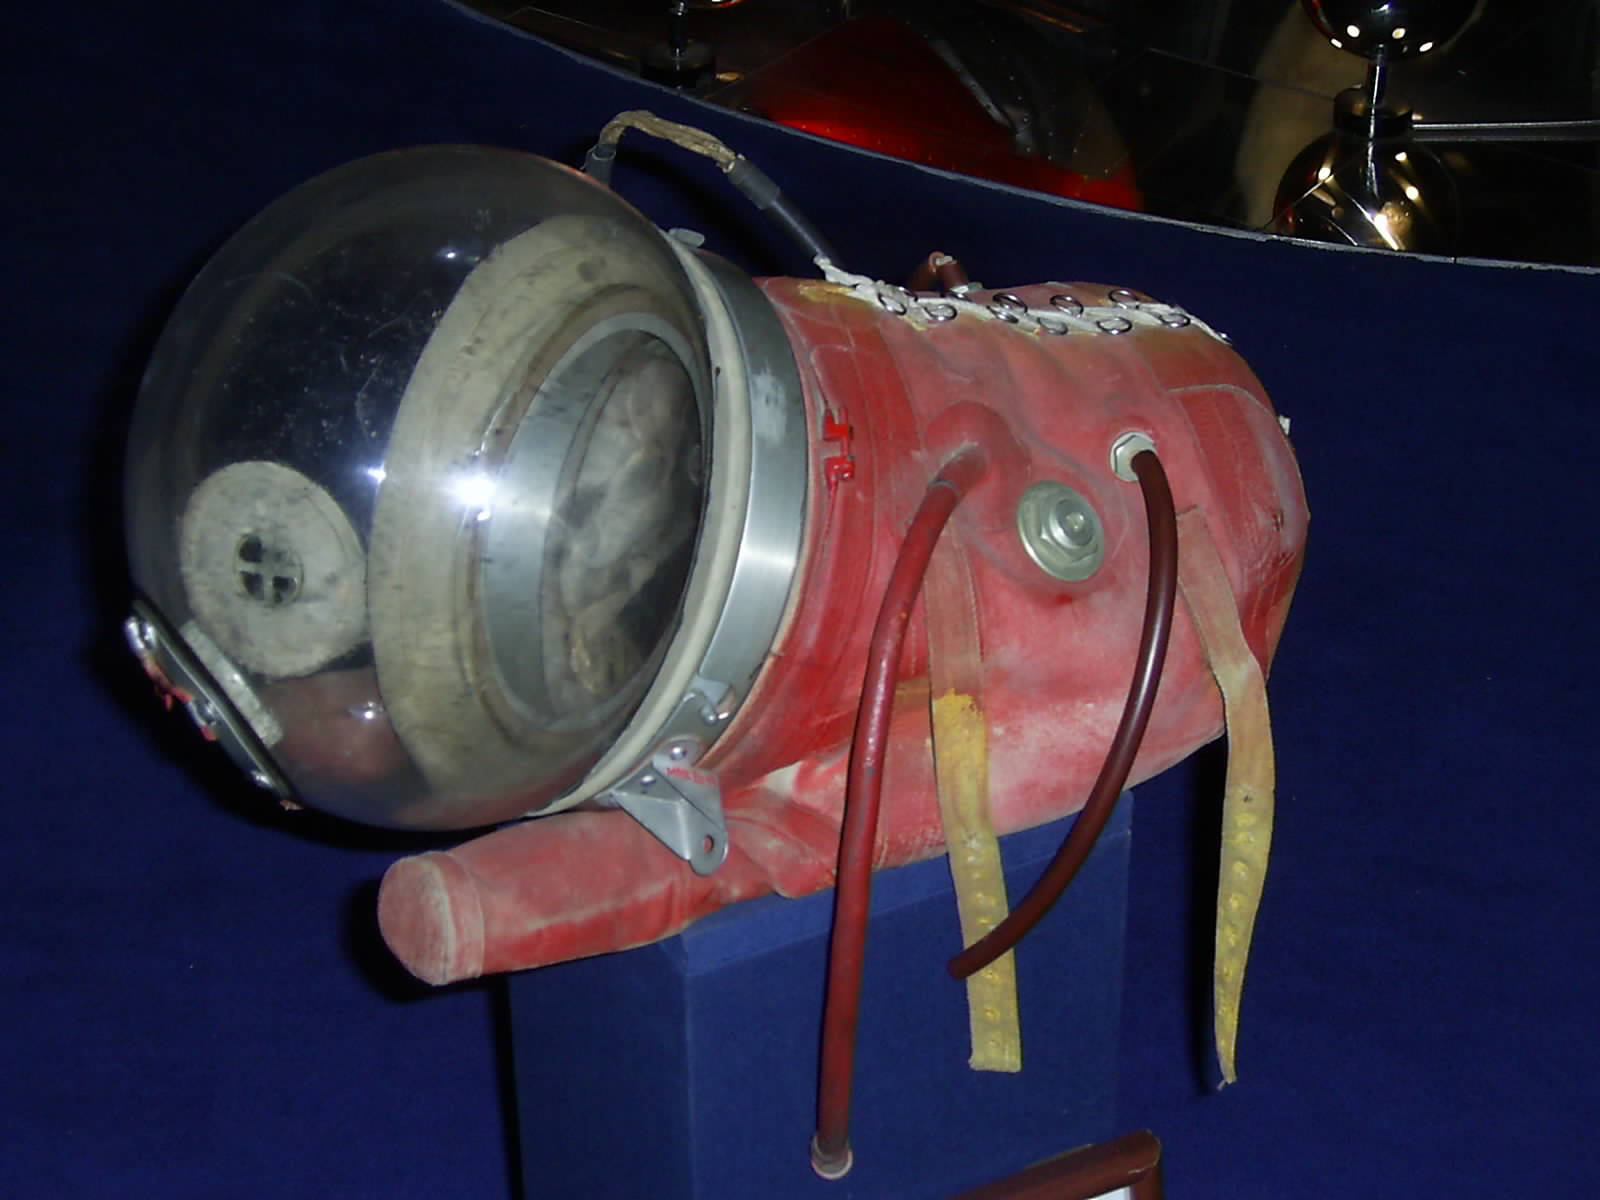 Space suit of Laika - First living creature orbiting earth in outer space